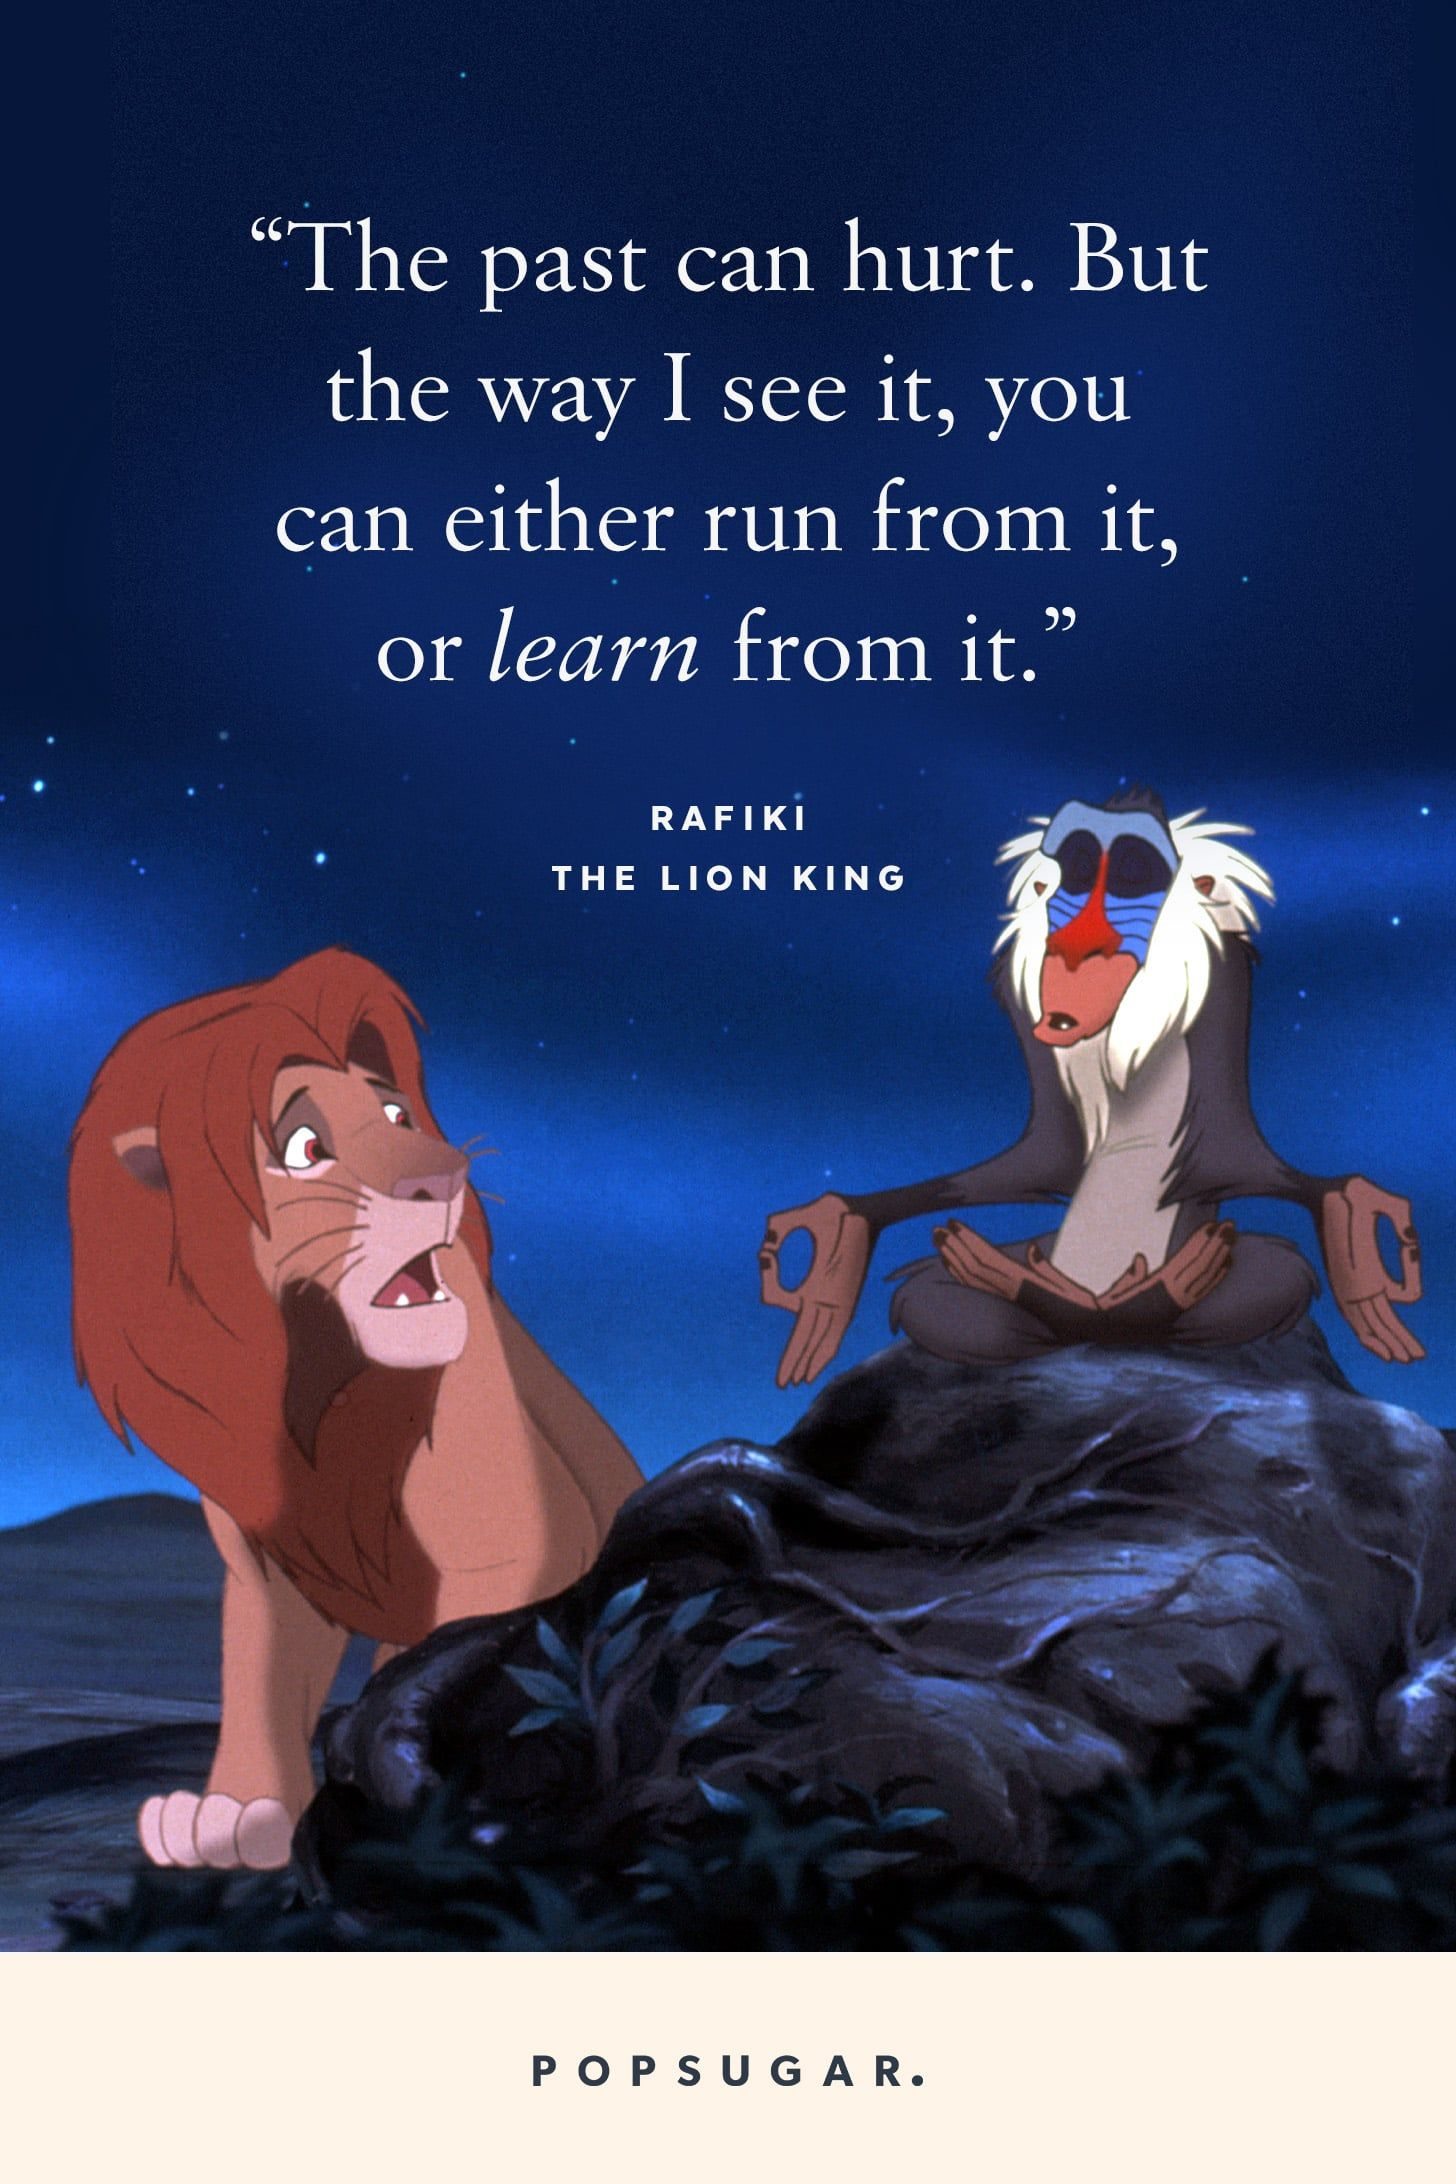 44 Emotional and Beautiful Disney Quotes